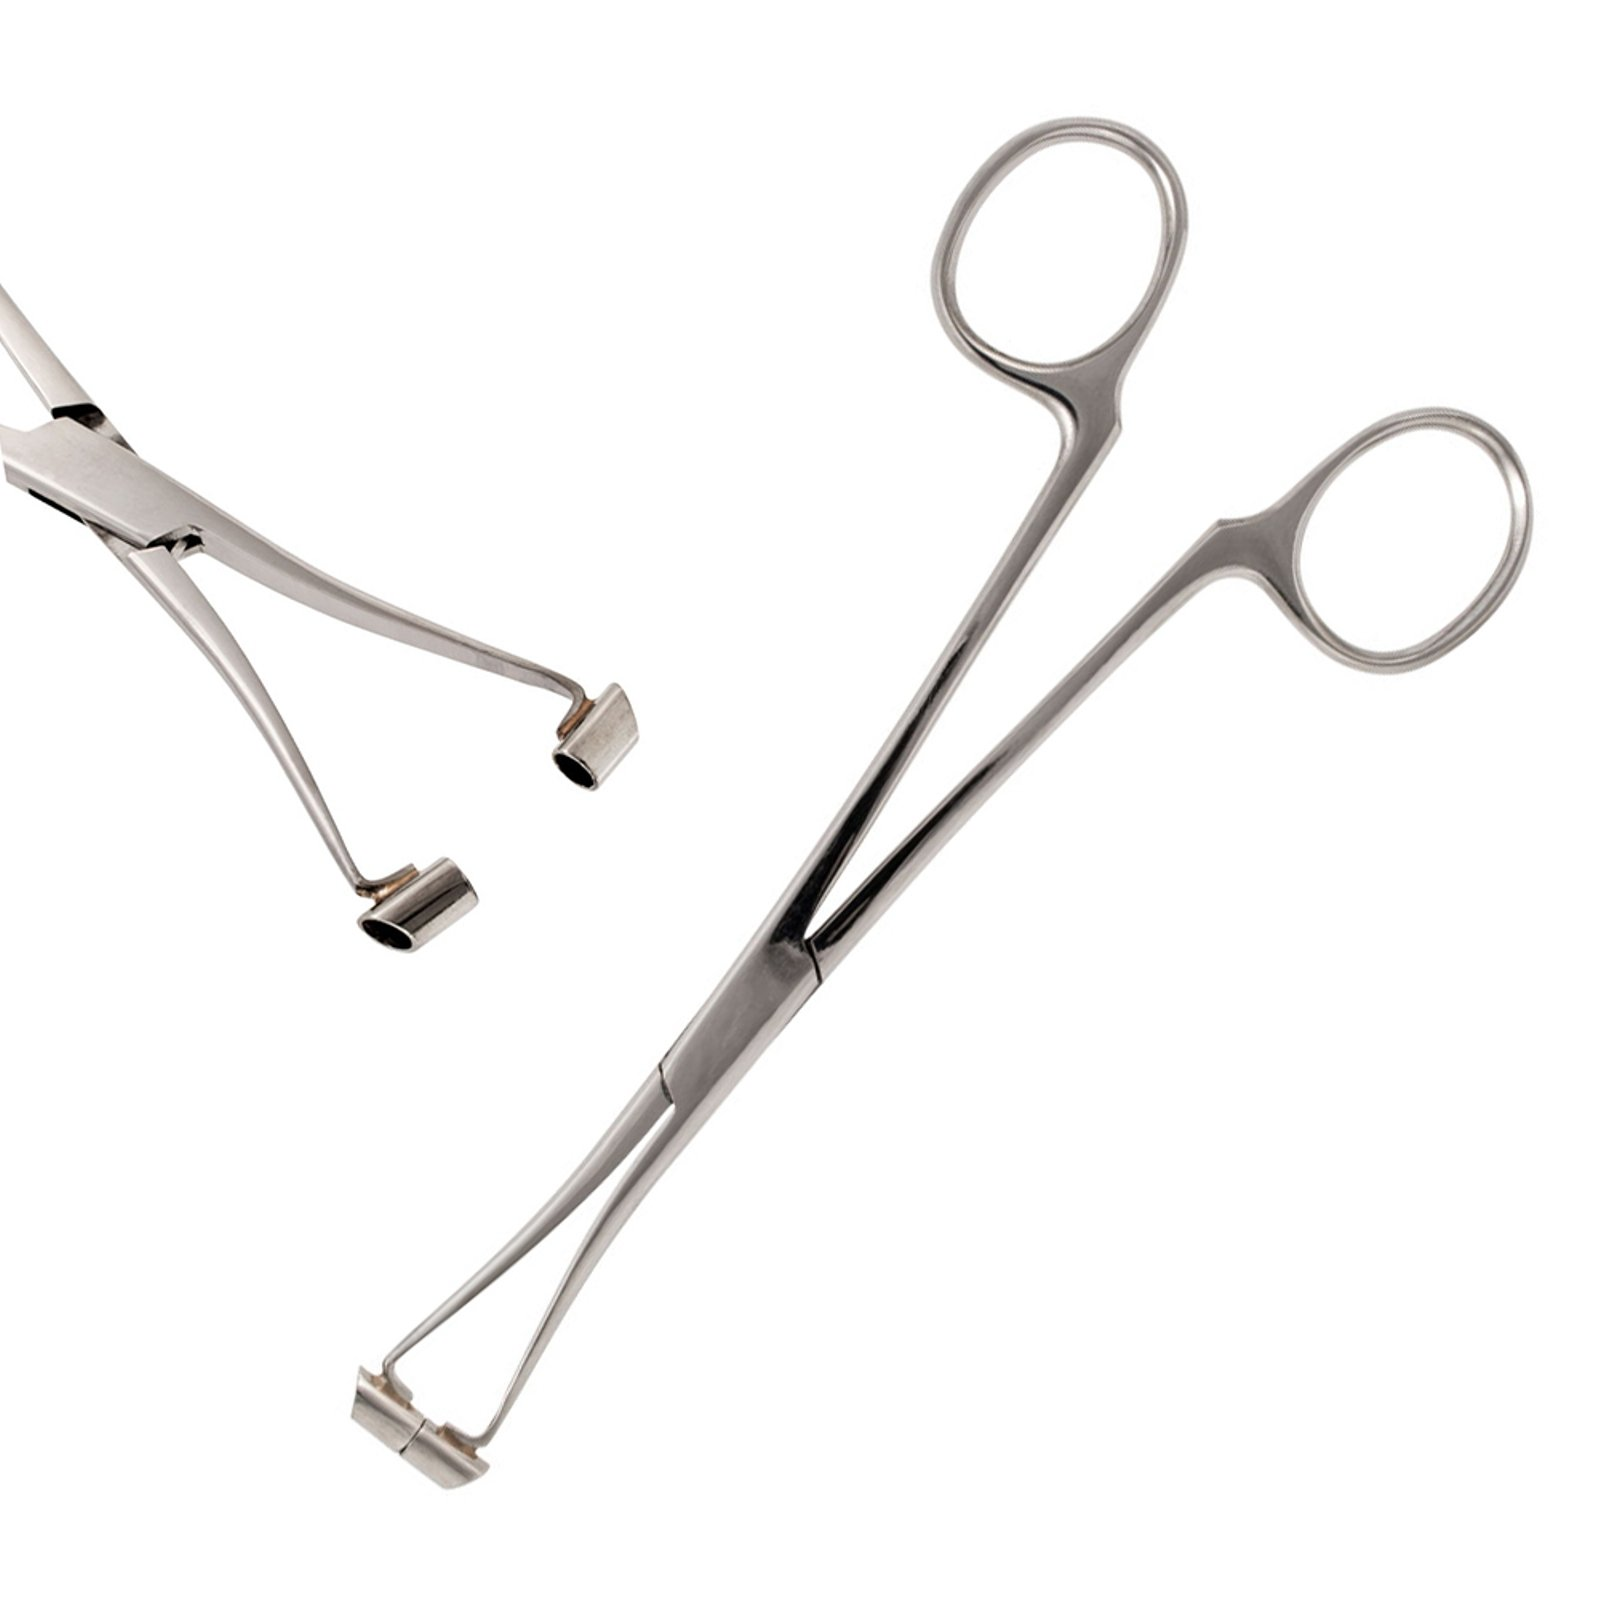 Surgical Steel Septum Nose Pierce Forcep Piercing Clamps